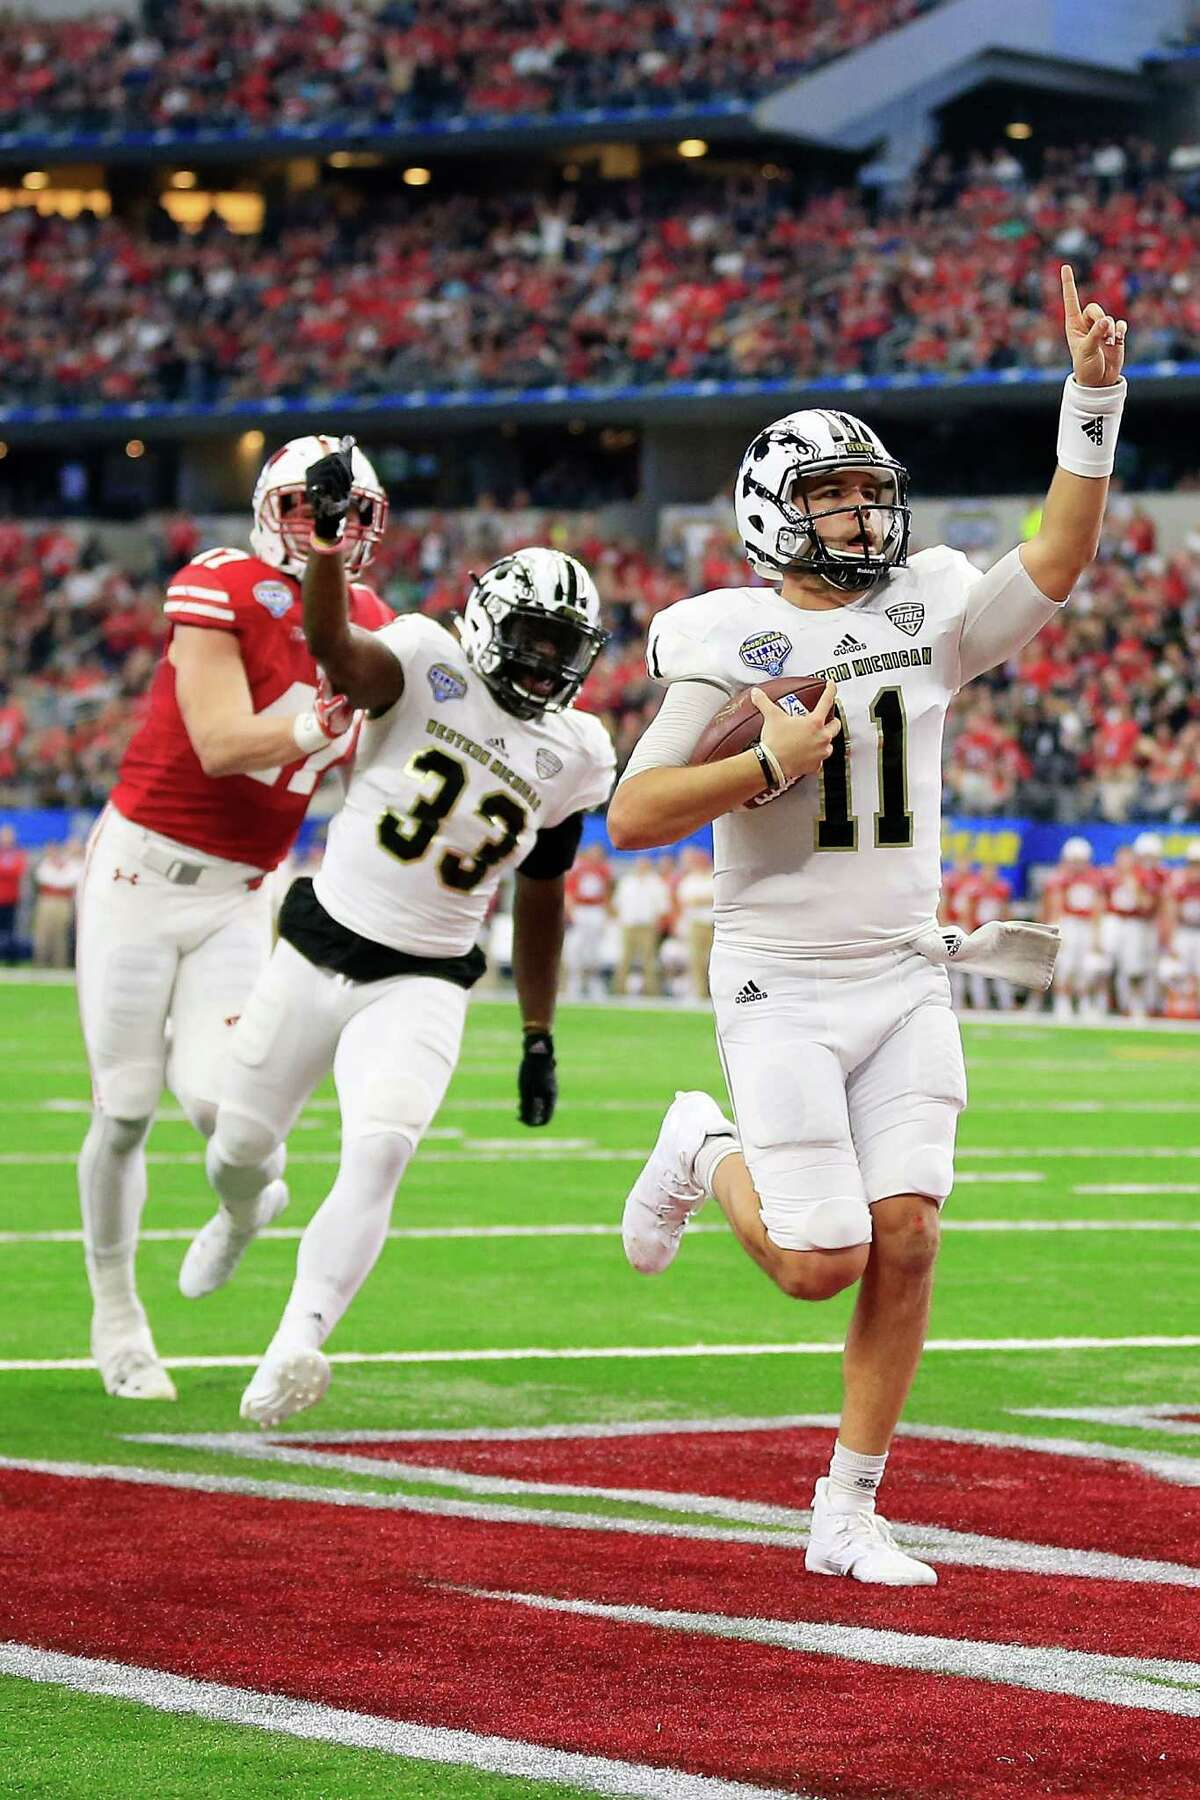 Mid-American Conference (0-6) Biggest 'win': Western Michigan faced a massive uphill climb in the trenches against Big Ten foe Wisconsin. Despite spotting the Badgers an early 14-point lead, the Broncos held their own in a 24-16 loss in the Cotton Bowl. The Broncos (13-1) had a chance to complete an undefeated season three years after winning one game. Biggest dud: In a 55-10 Miami Beach Bowl loss to Tulsa, Central Michigan gave up nearly 600 yards of total offense.